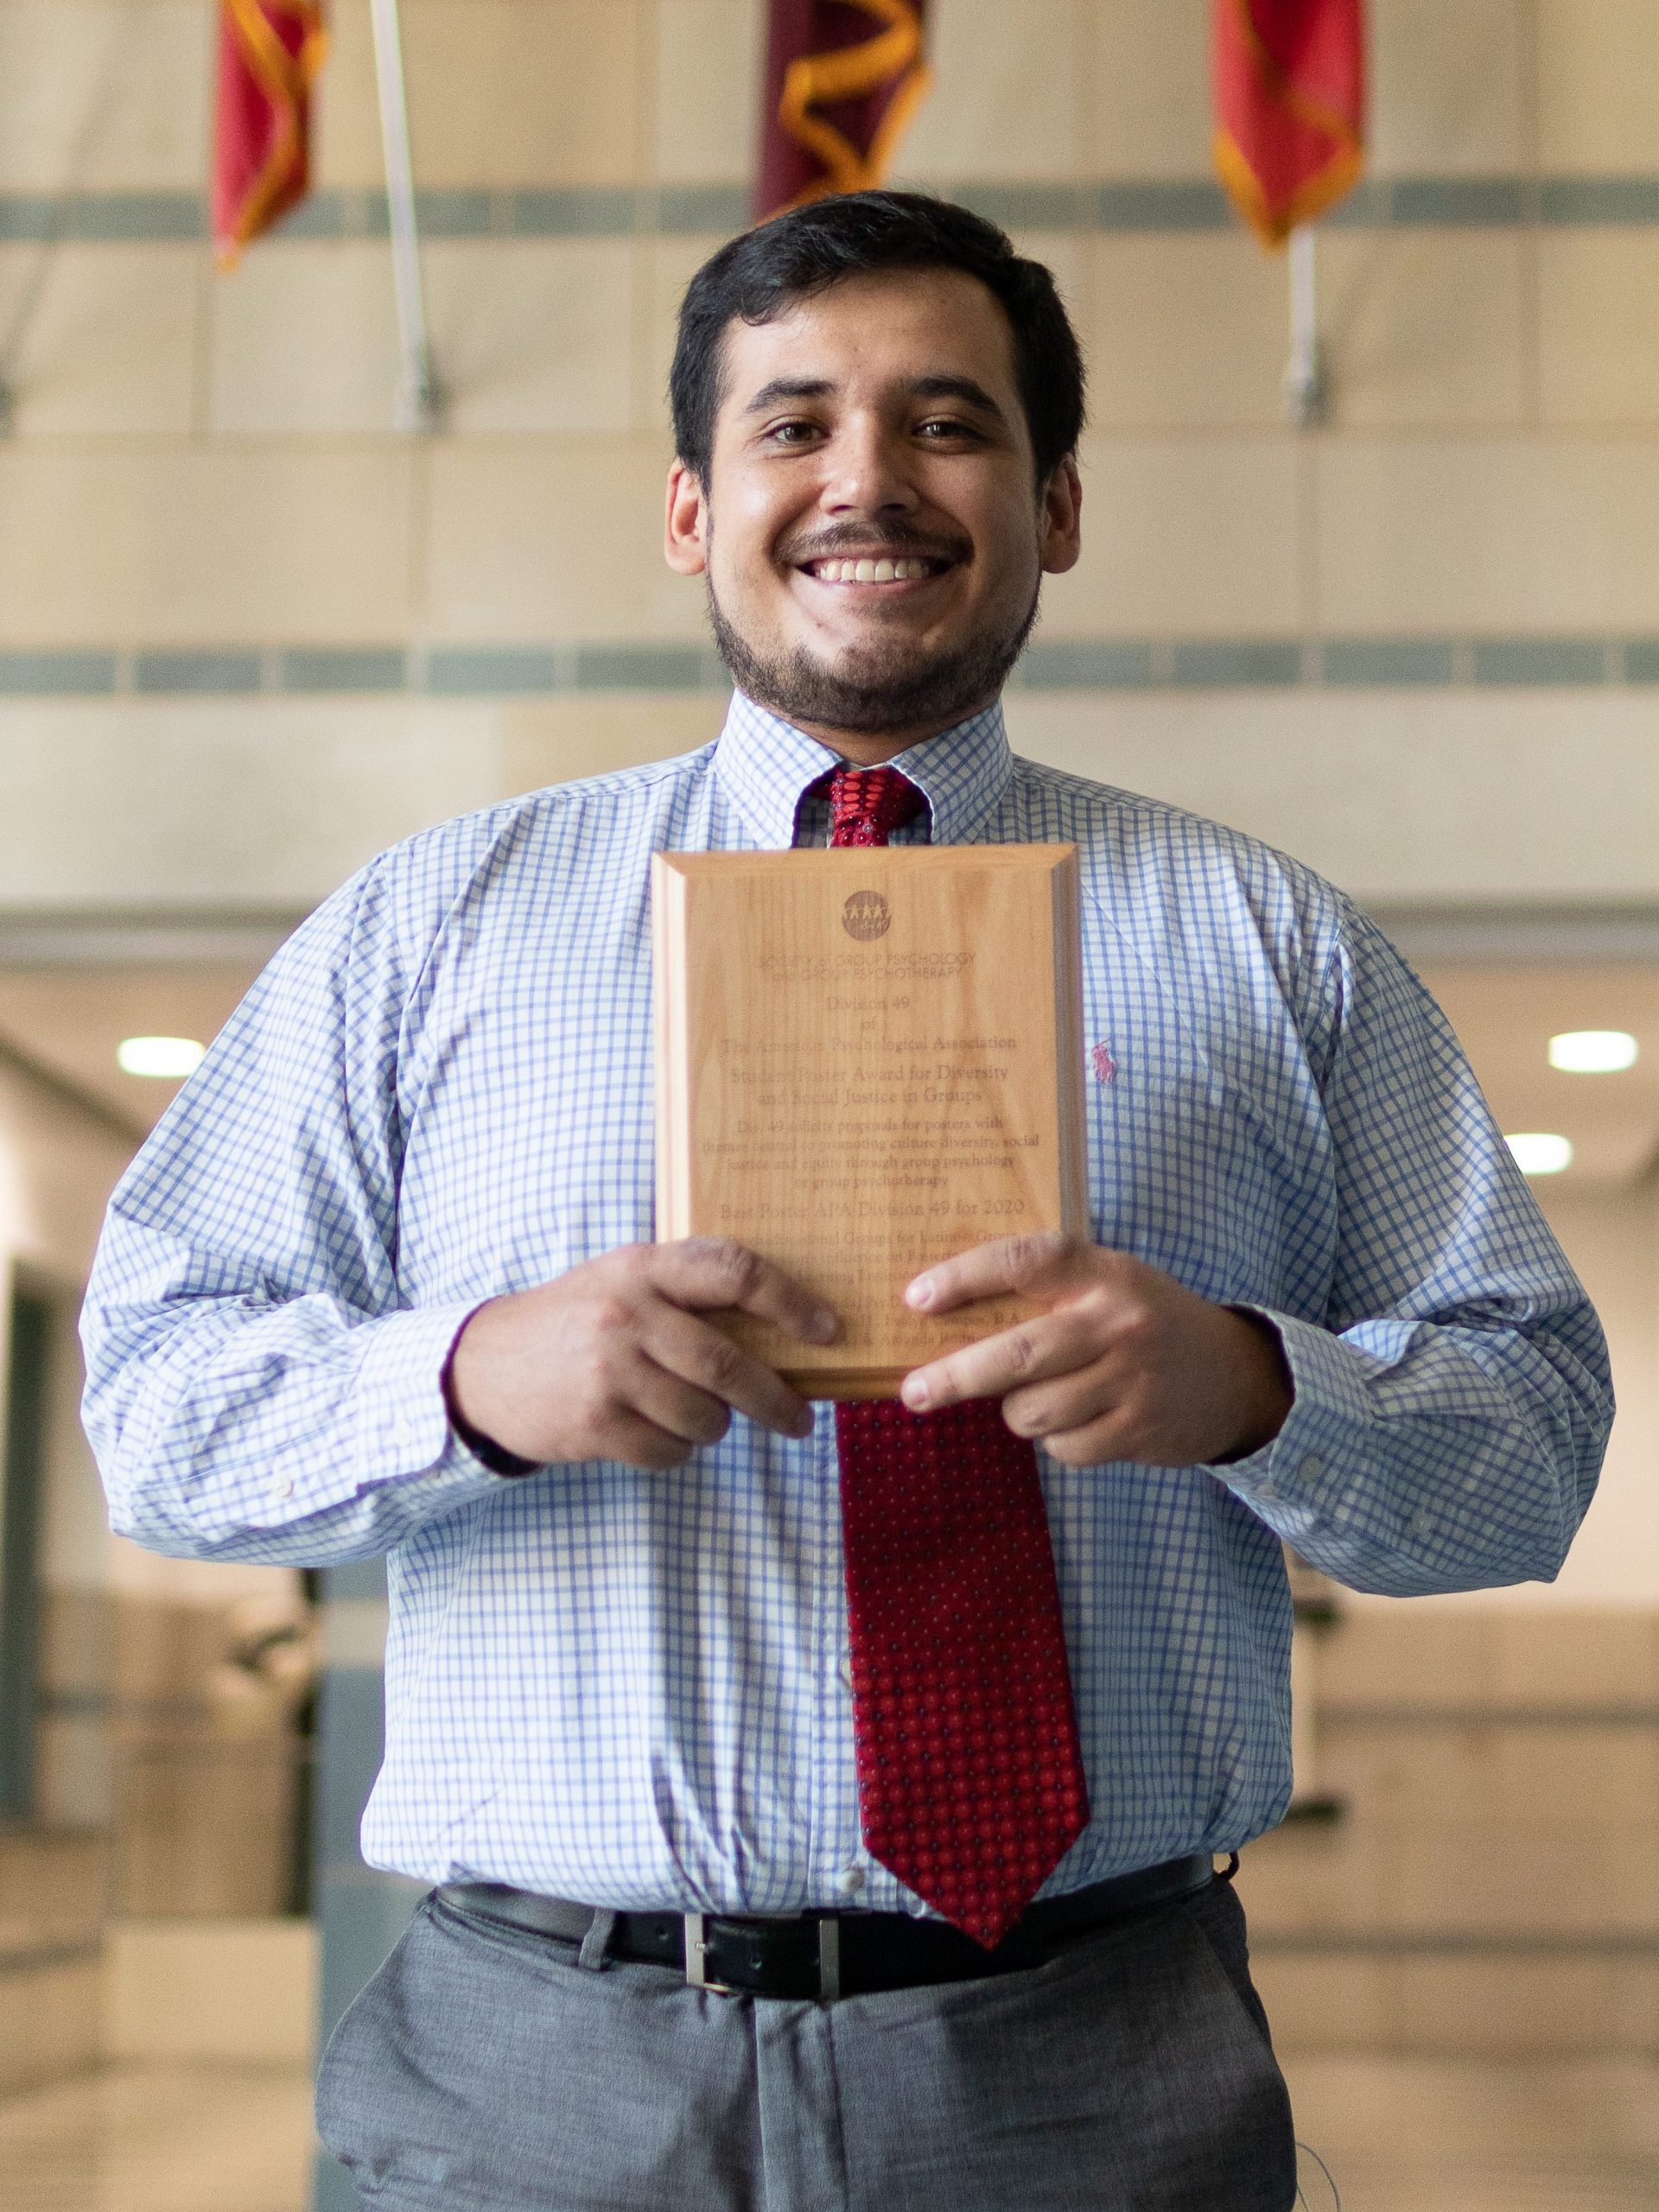 Flores with award